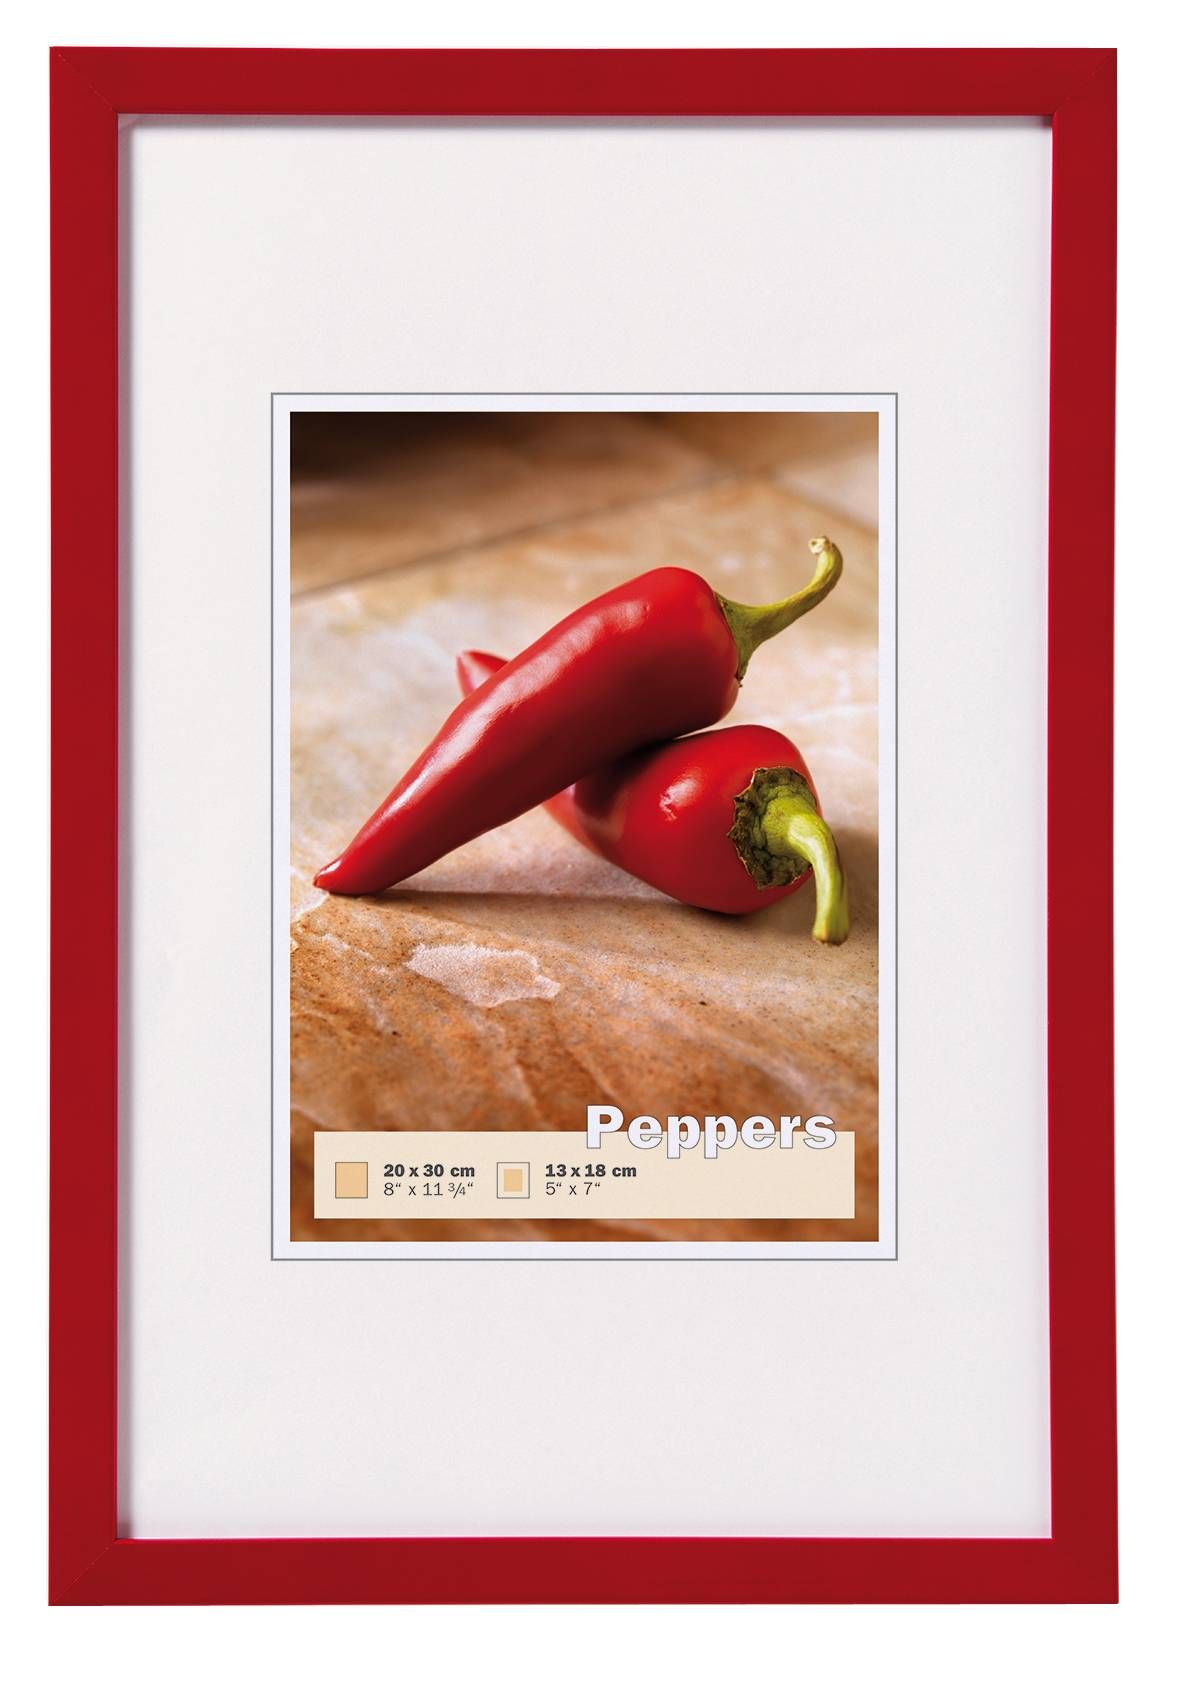 Walther Peppers Punainen 15x20 cm